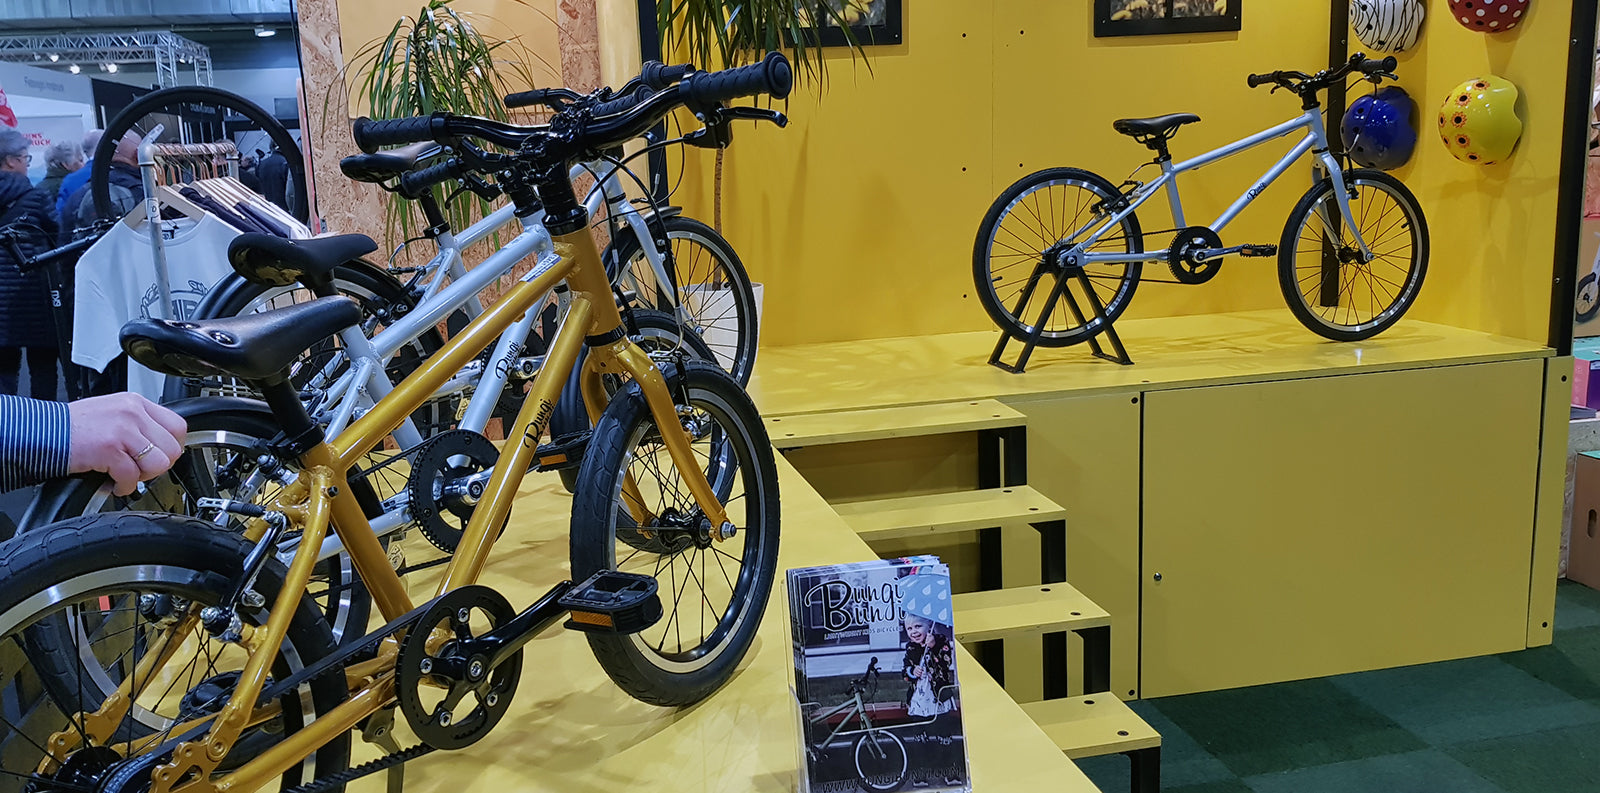 Bungi Bungi pie Bike Motion 2019